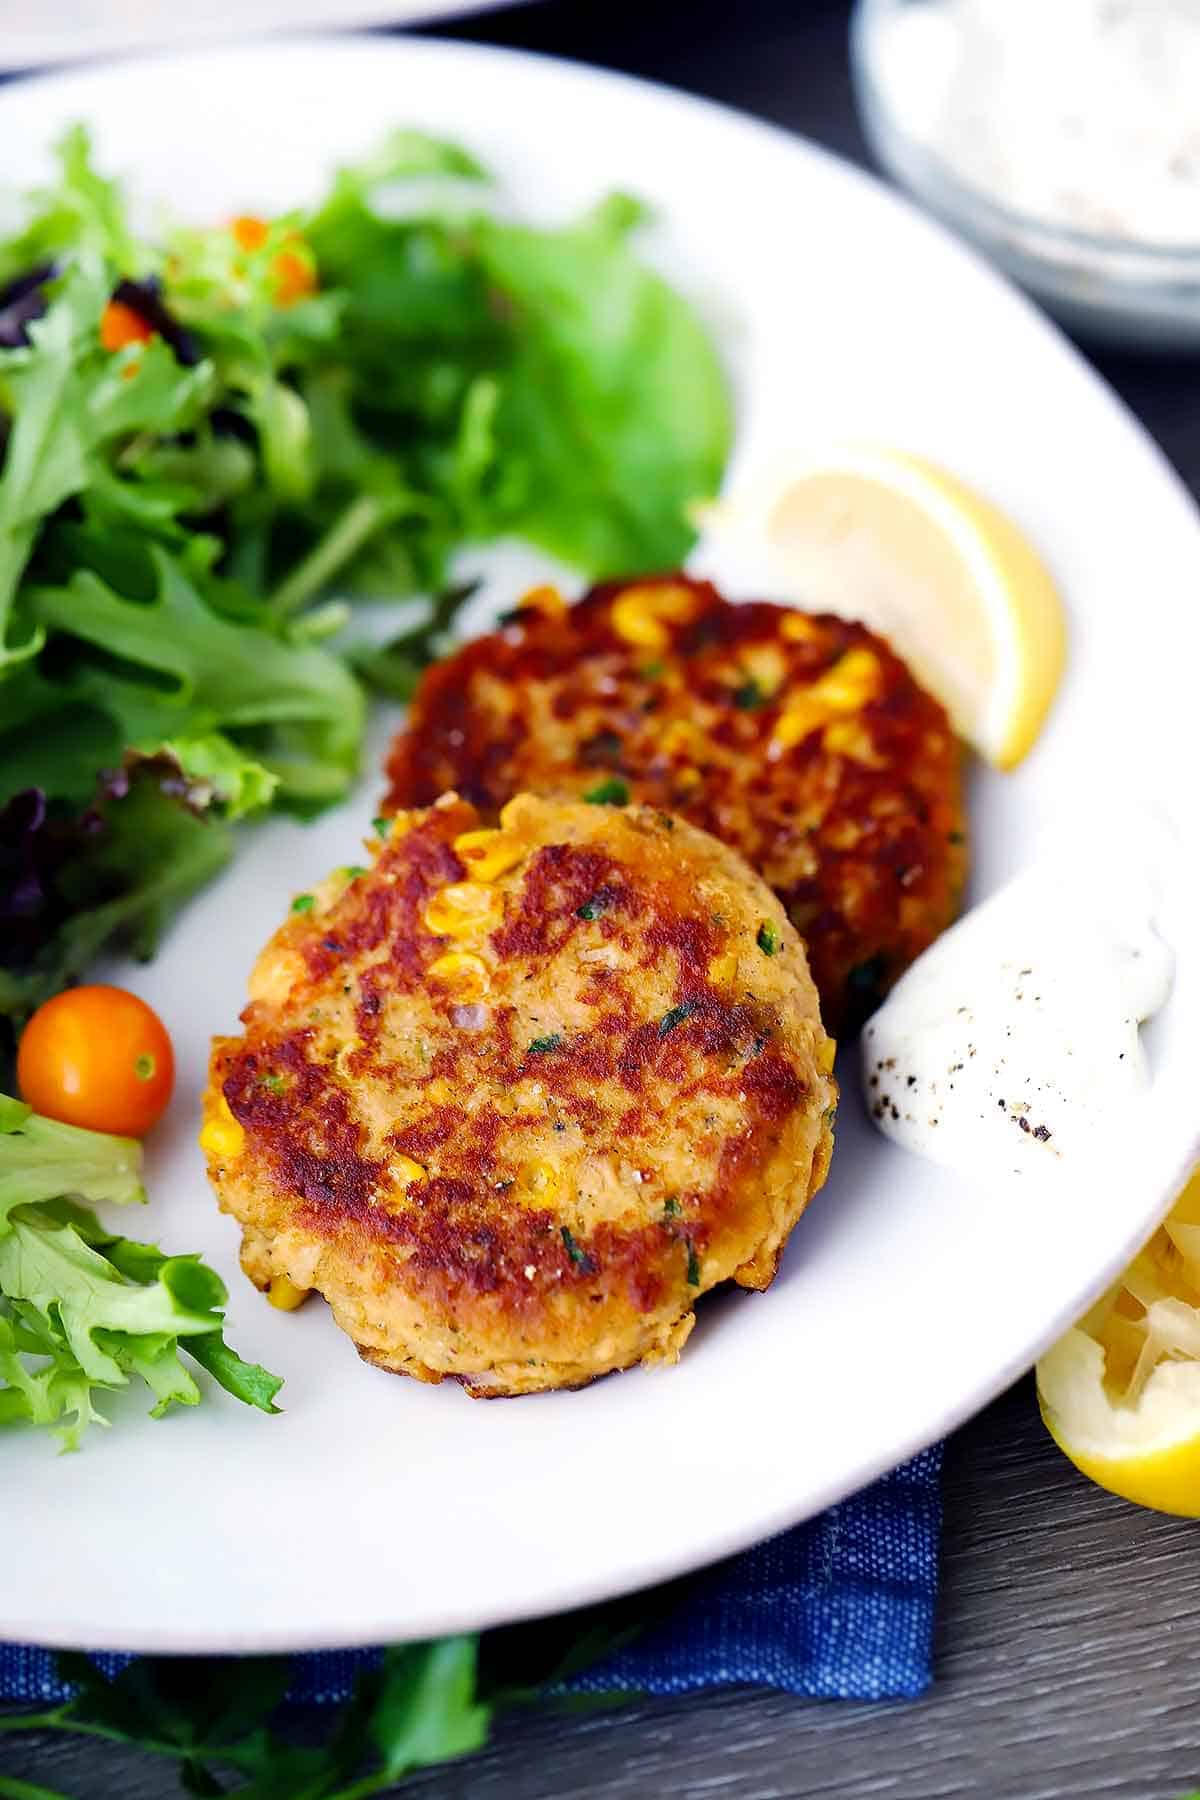 Two salmon cakes on a white plate with a lemon wedge and a salad.